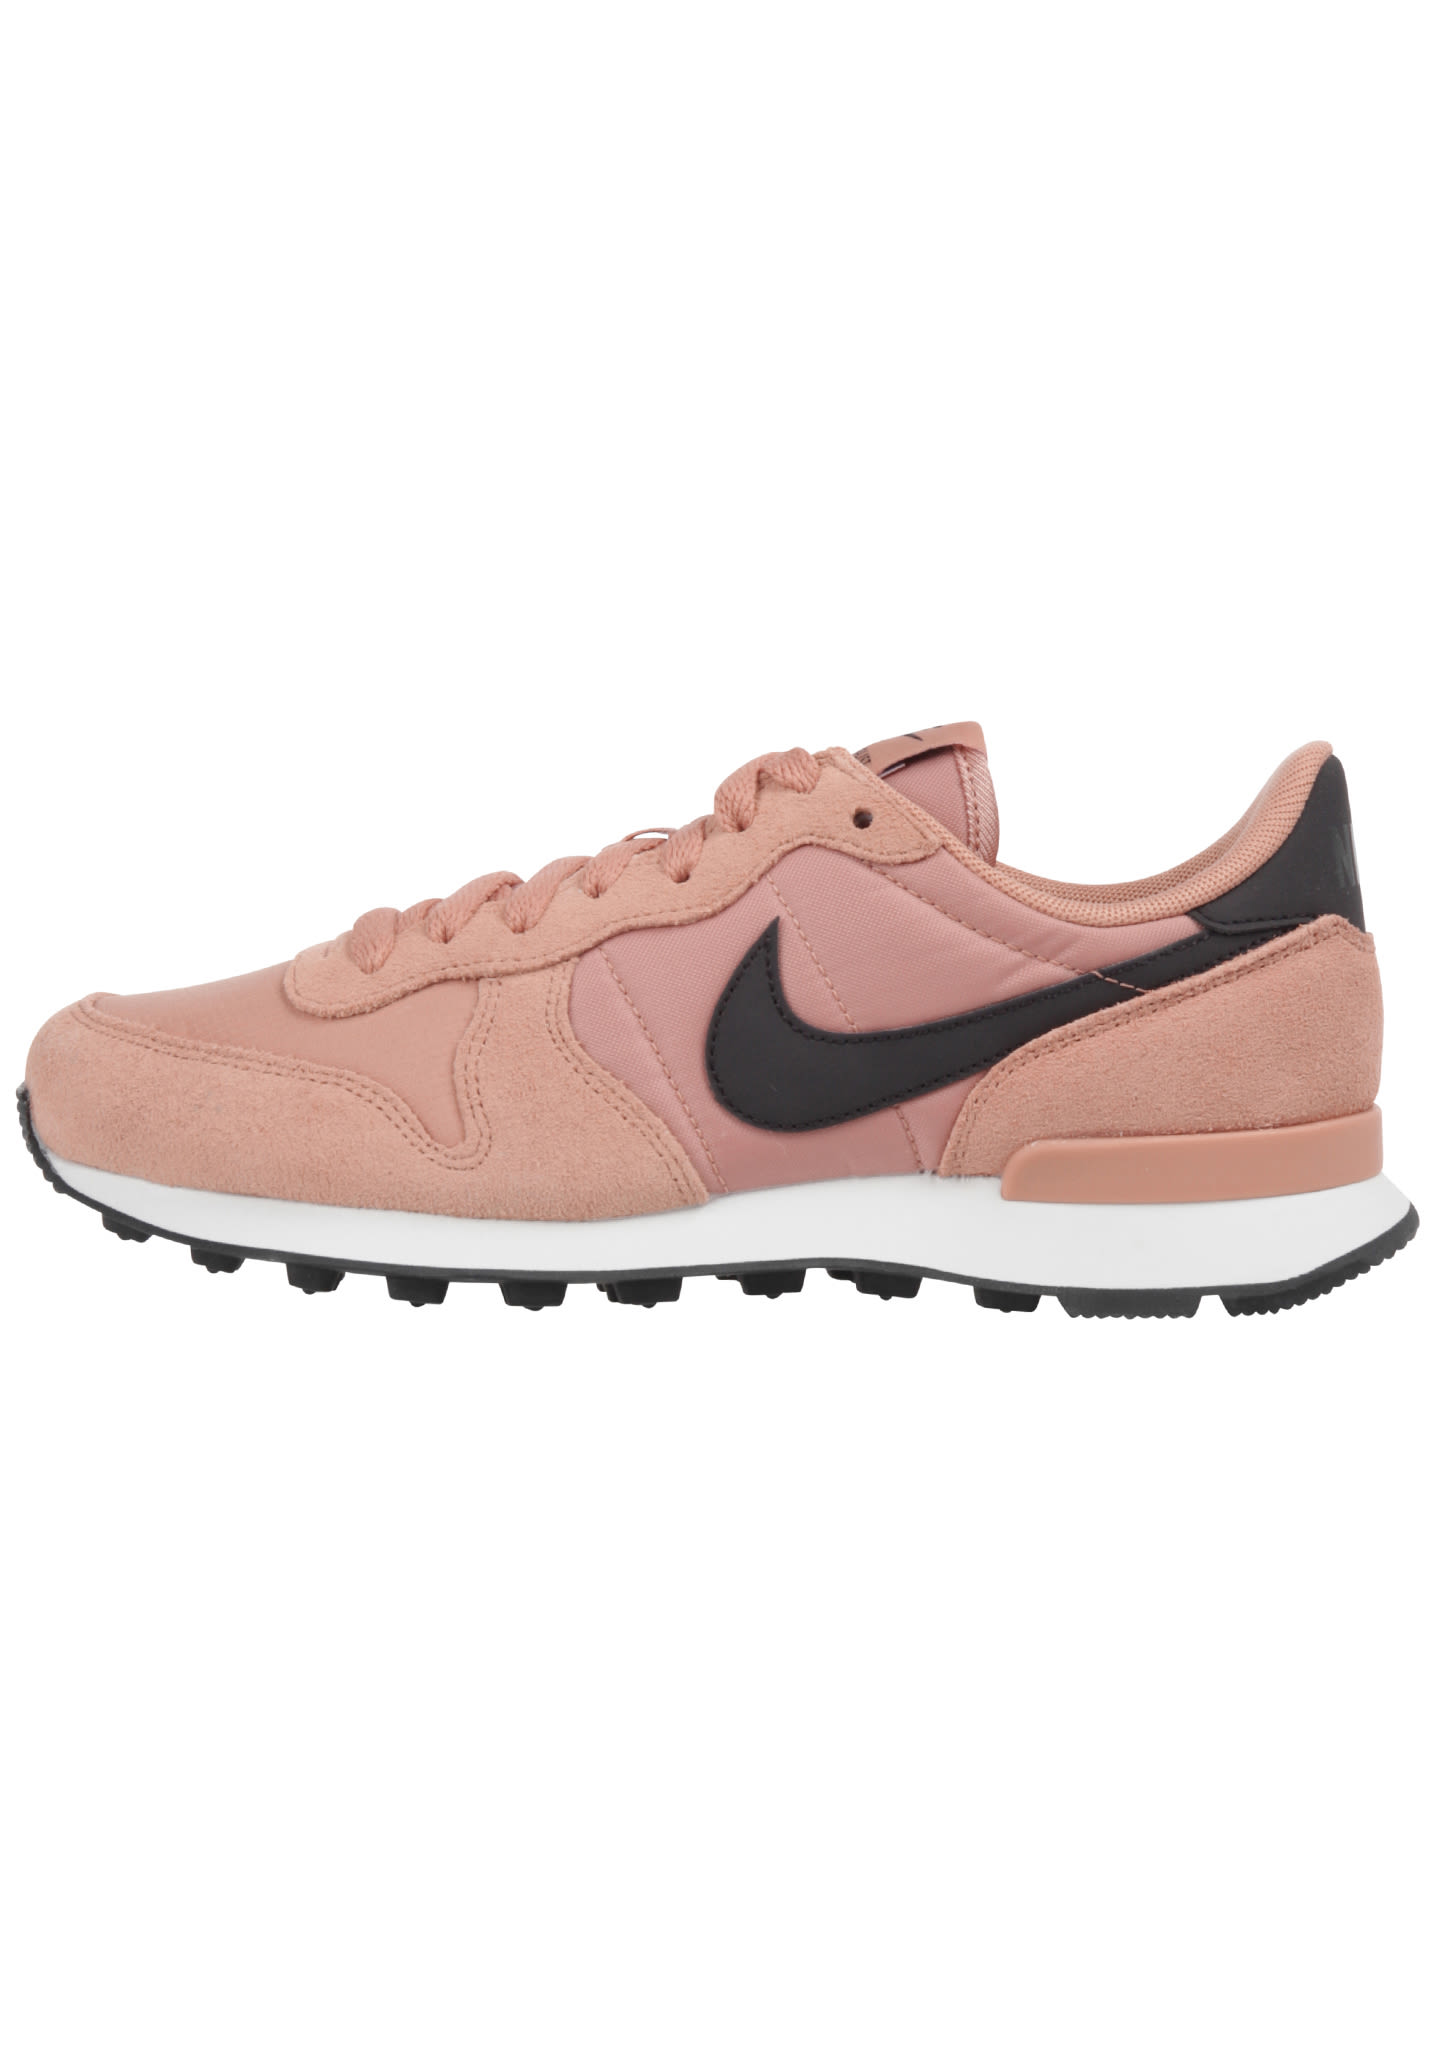 cheap for discount save up to 80% release info on NIKE SPORTSWEAR Internationalist - Sneakers for Women - Pink